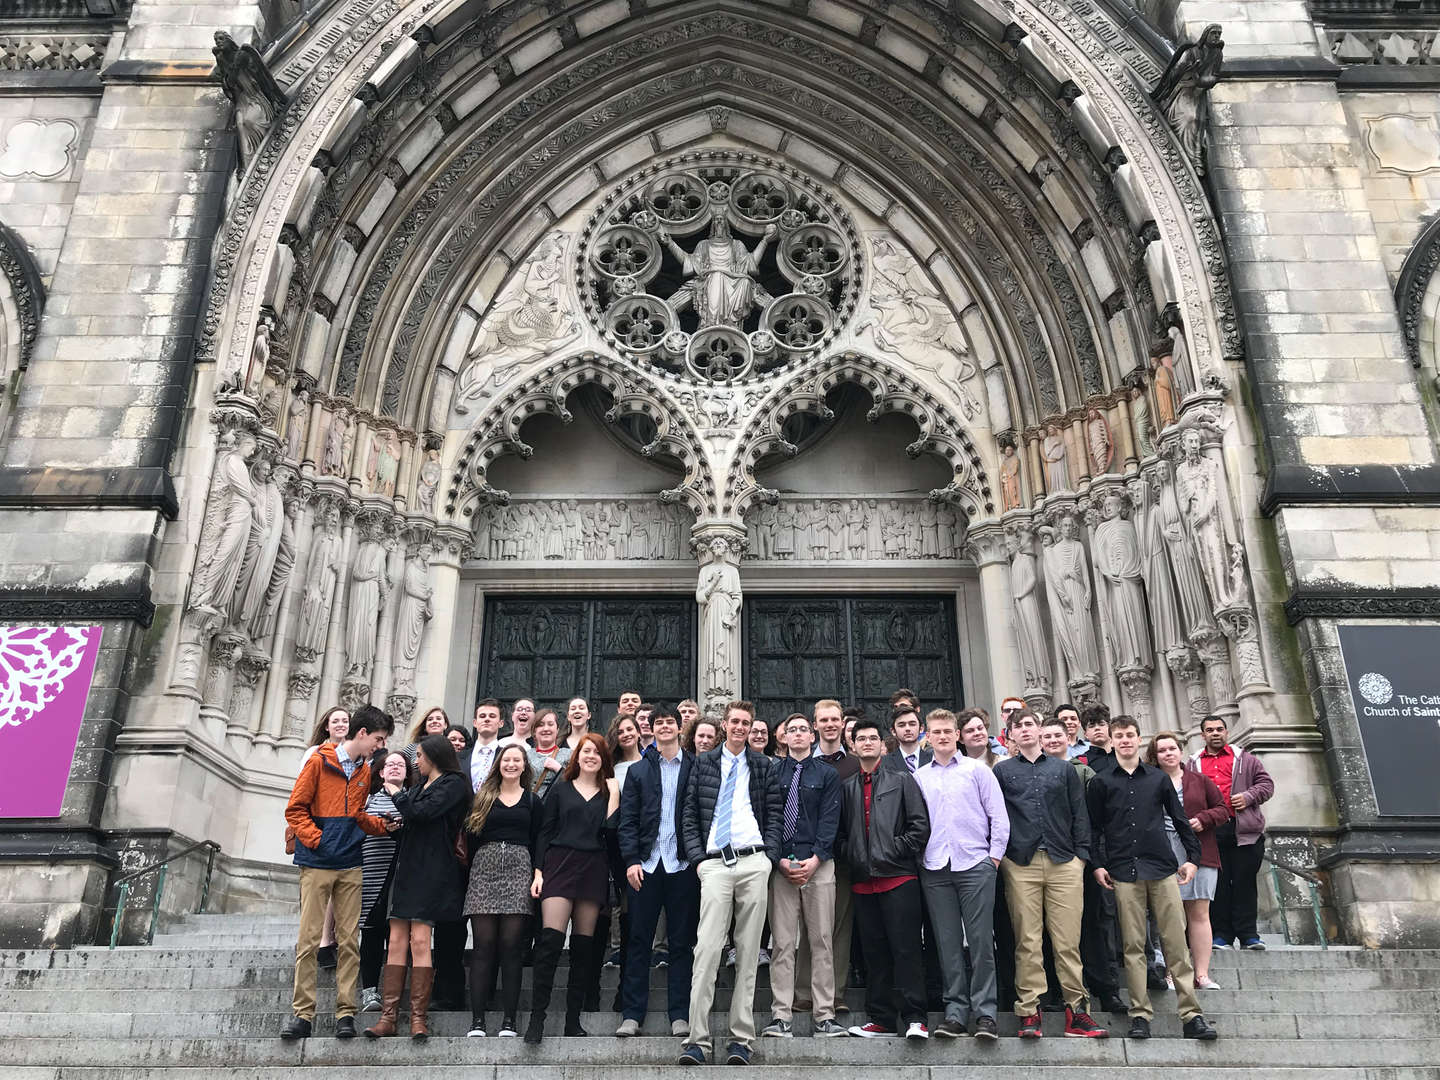 Students in front of a cathedral